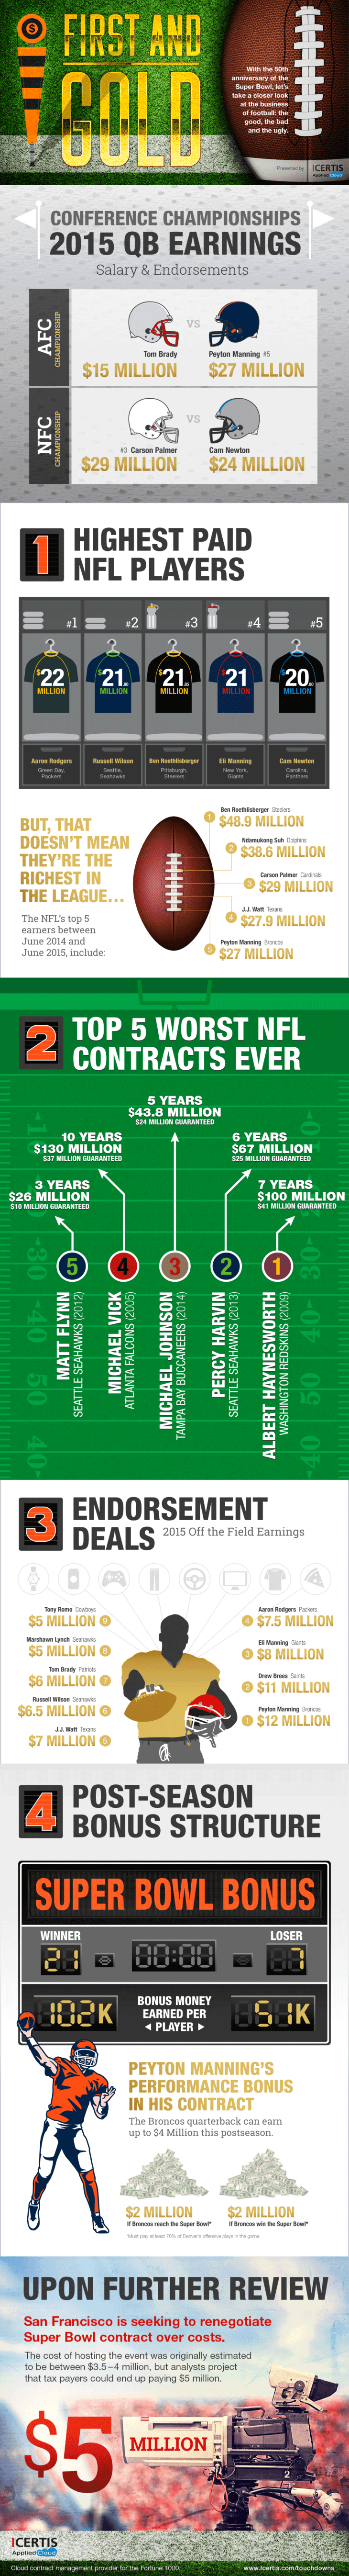 nfl-super-bowl-infographic-contracts